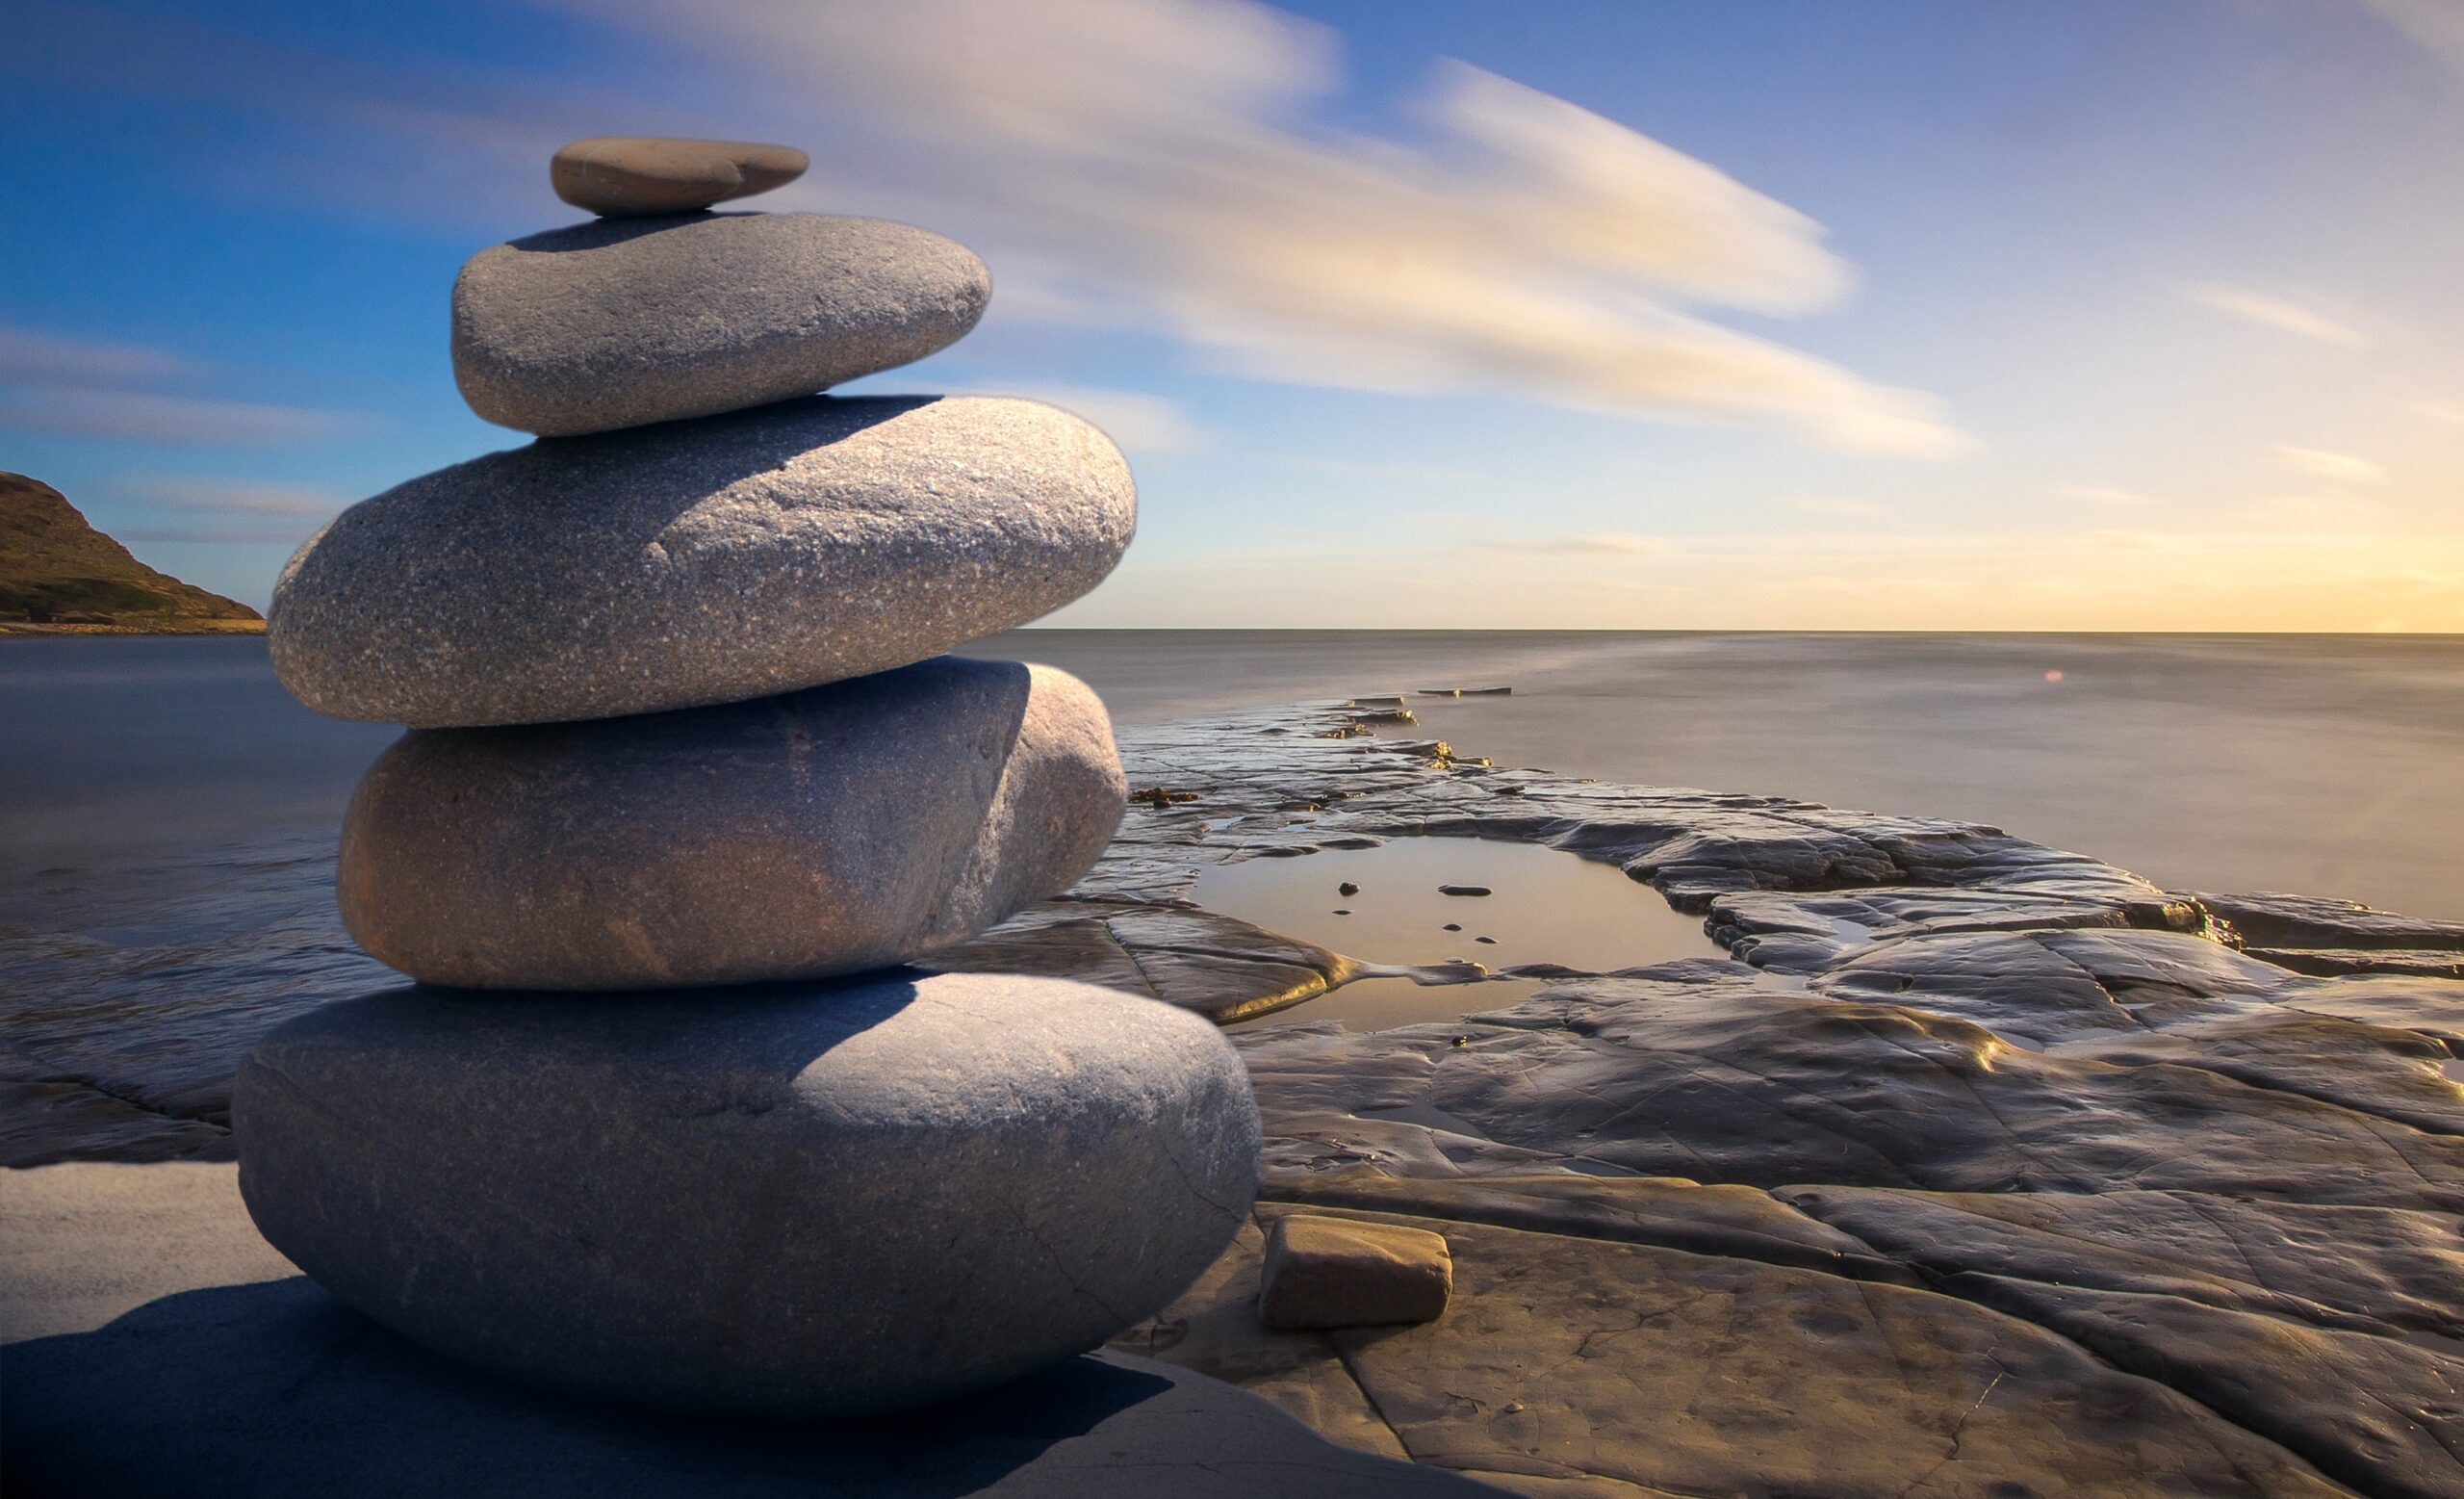 Stack of smooth rocks on a beach